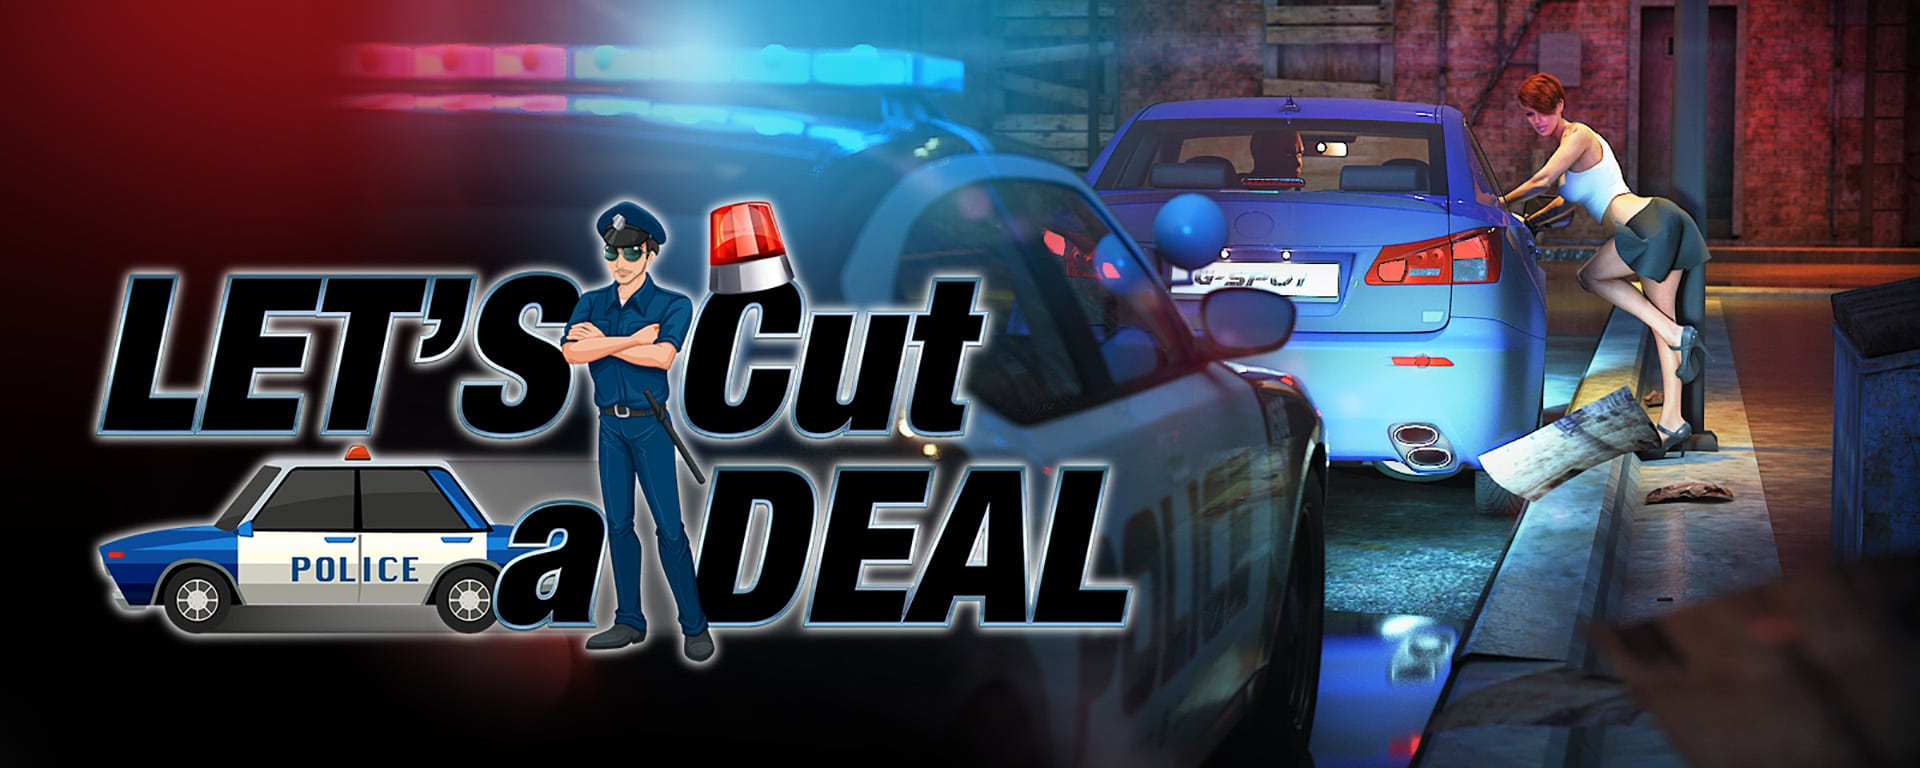 Lets Cut the Deal Porn Game